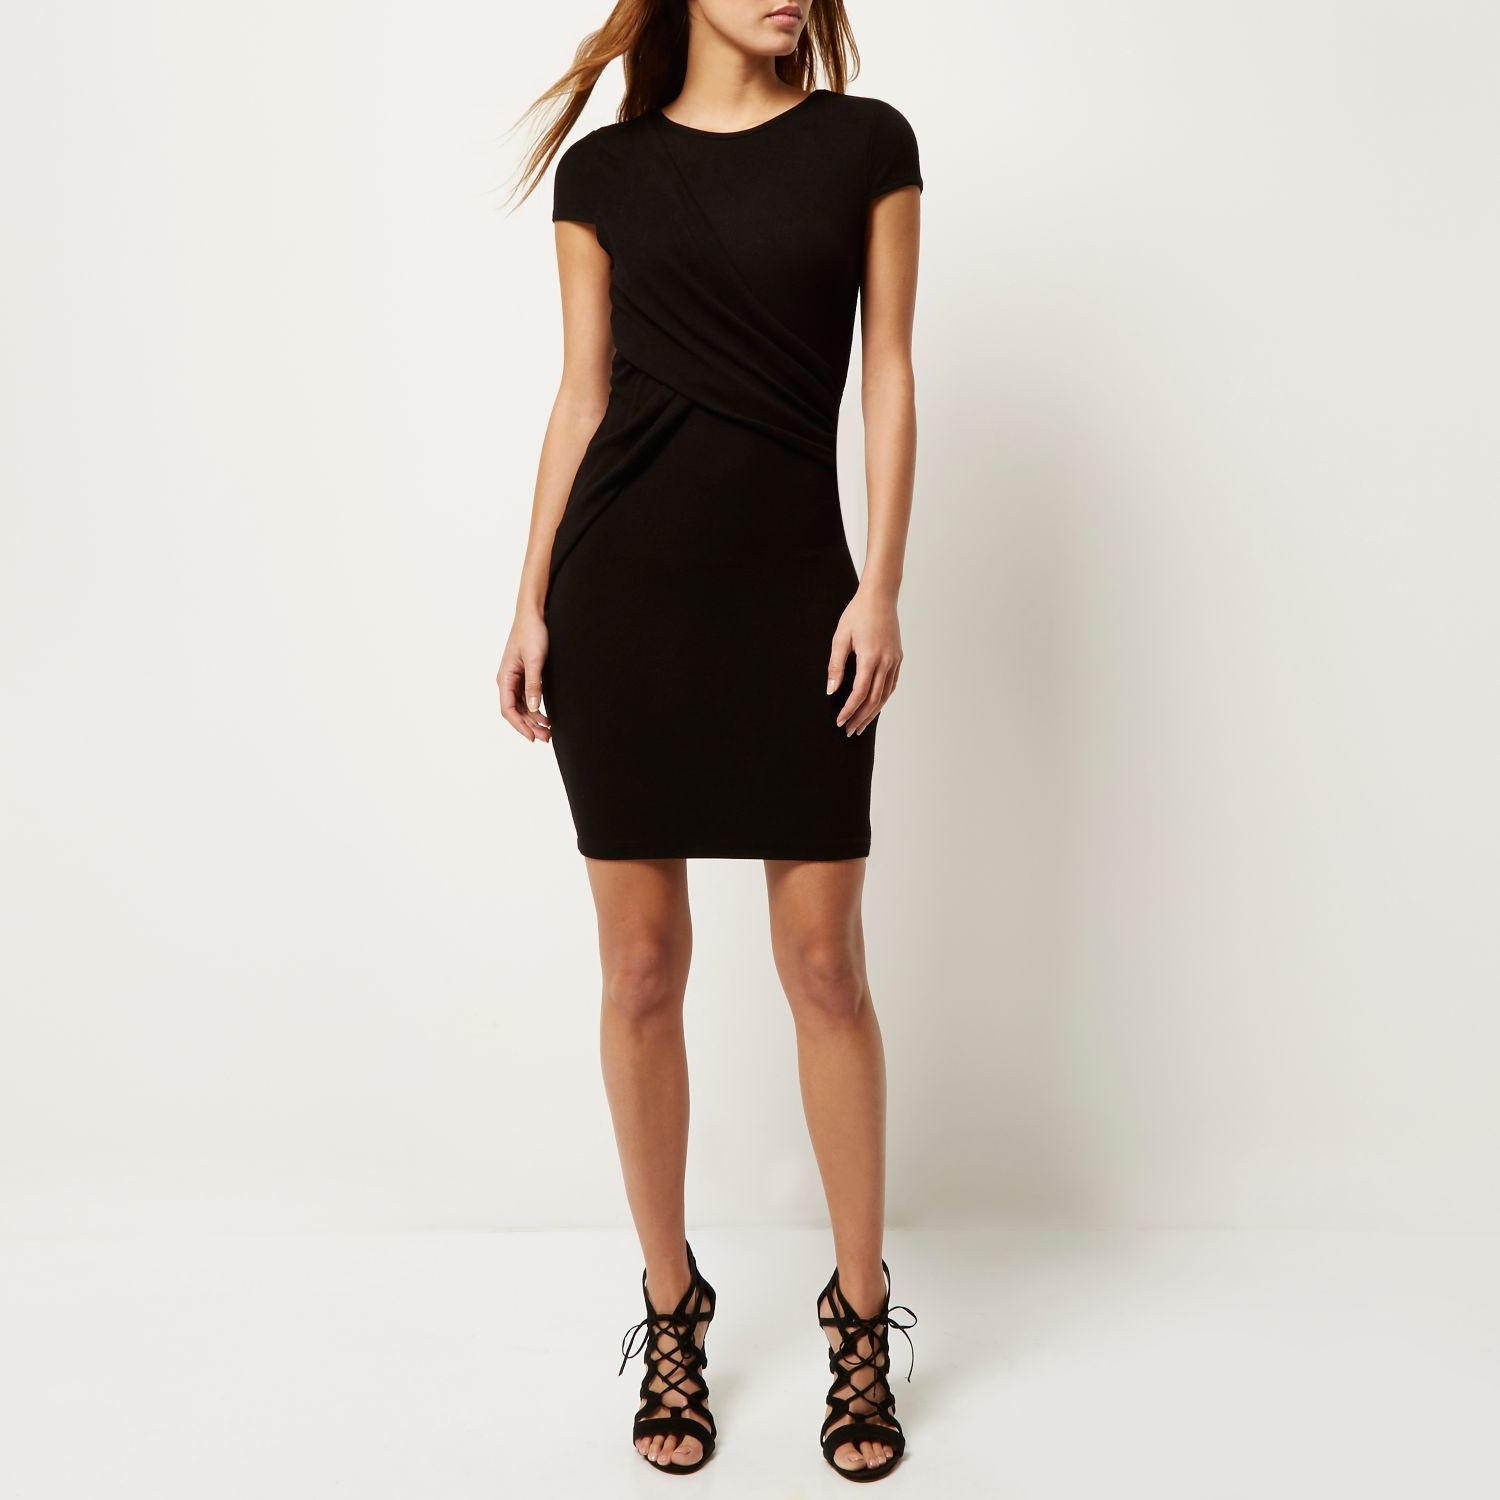 Dresses For Wedding Guest River Island : River island black ruched wrap bodycon dress in lyst